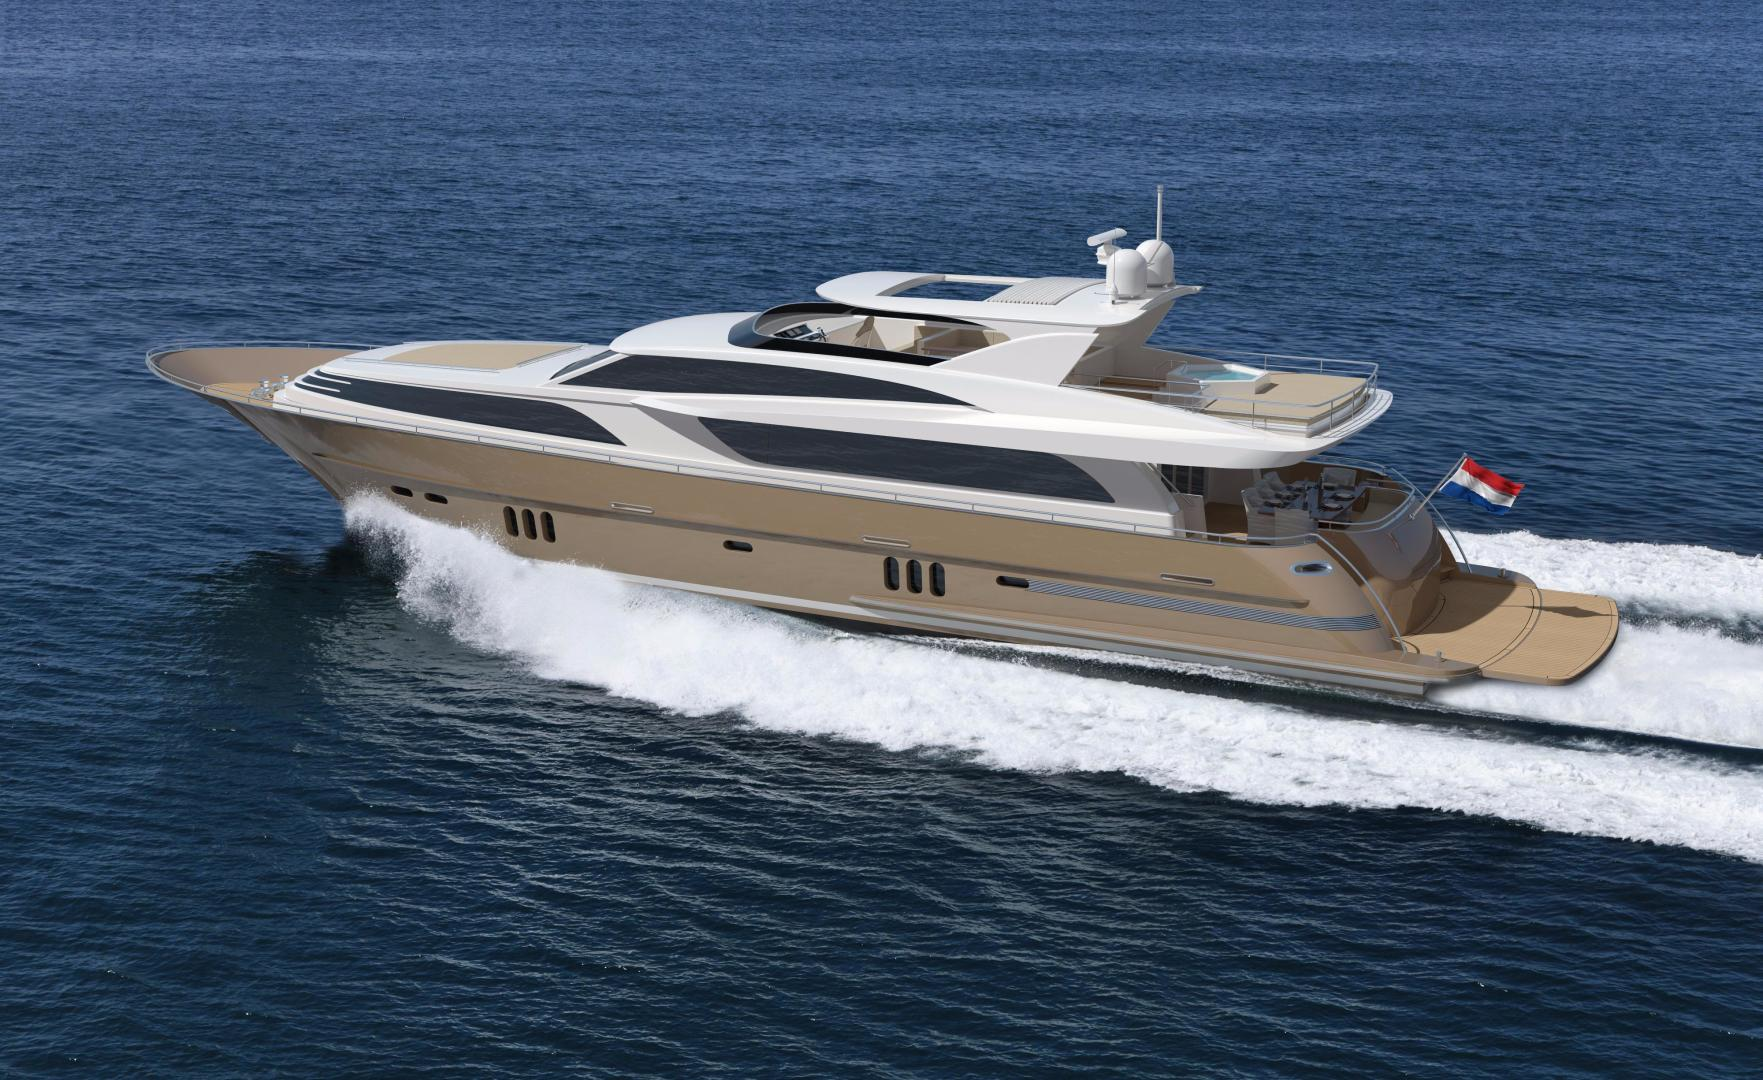 2021 Van der Valk 112' Raised Pilothouse 35M